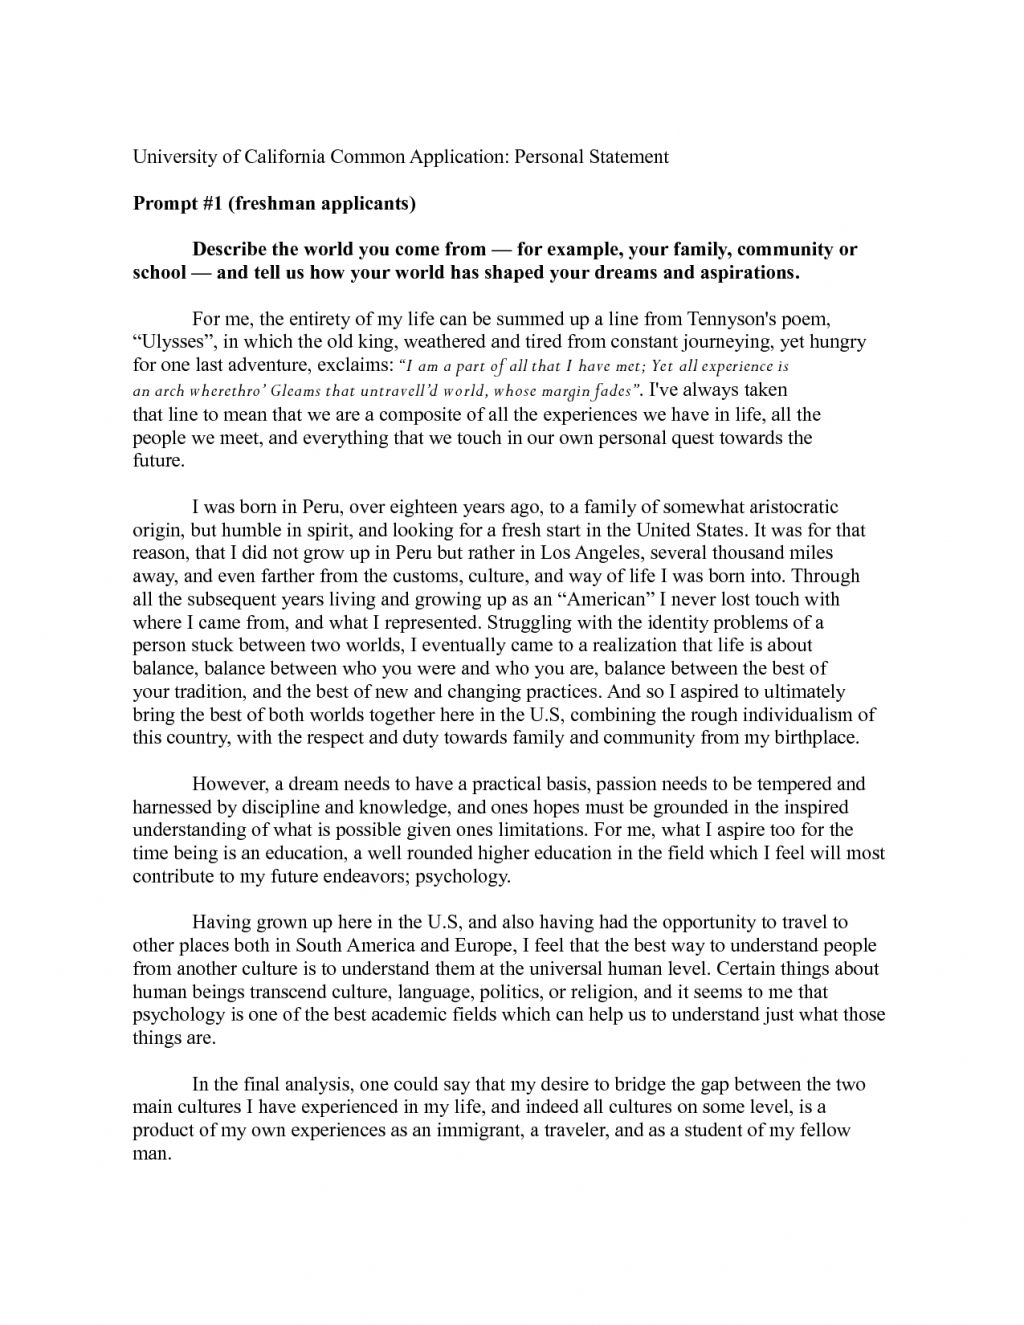 011 Collegecation Essays Words Berkeley Personal Statement Template Pcffemqy Student Life About Health This Will Attempt To Awesome 1024x1325 Immigration Unusual Sybil Baker Introduction Full